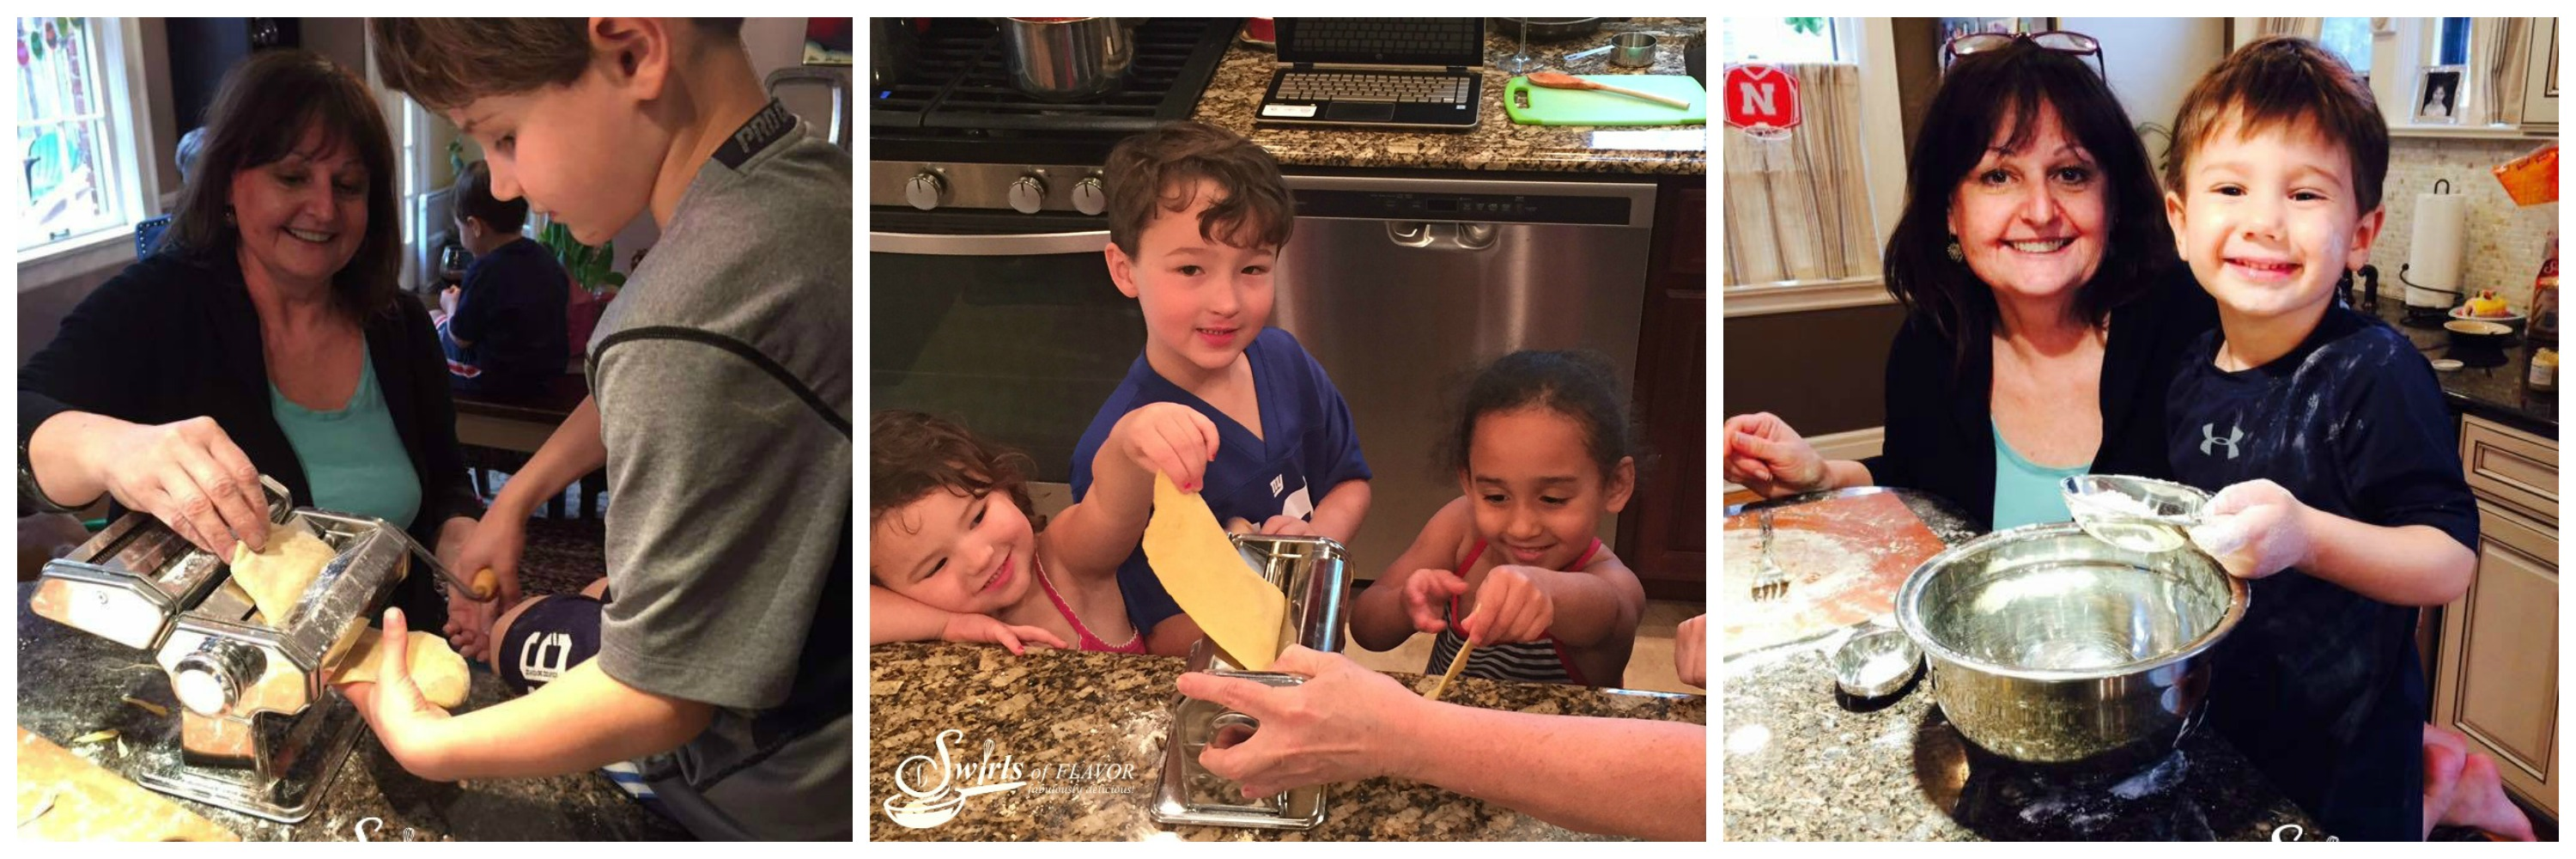 Grandkids Making pasta